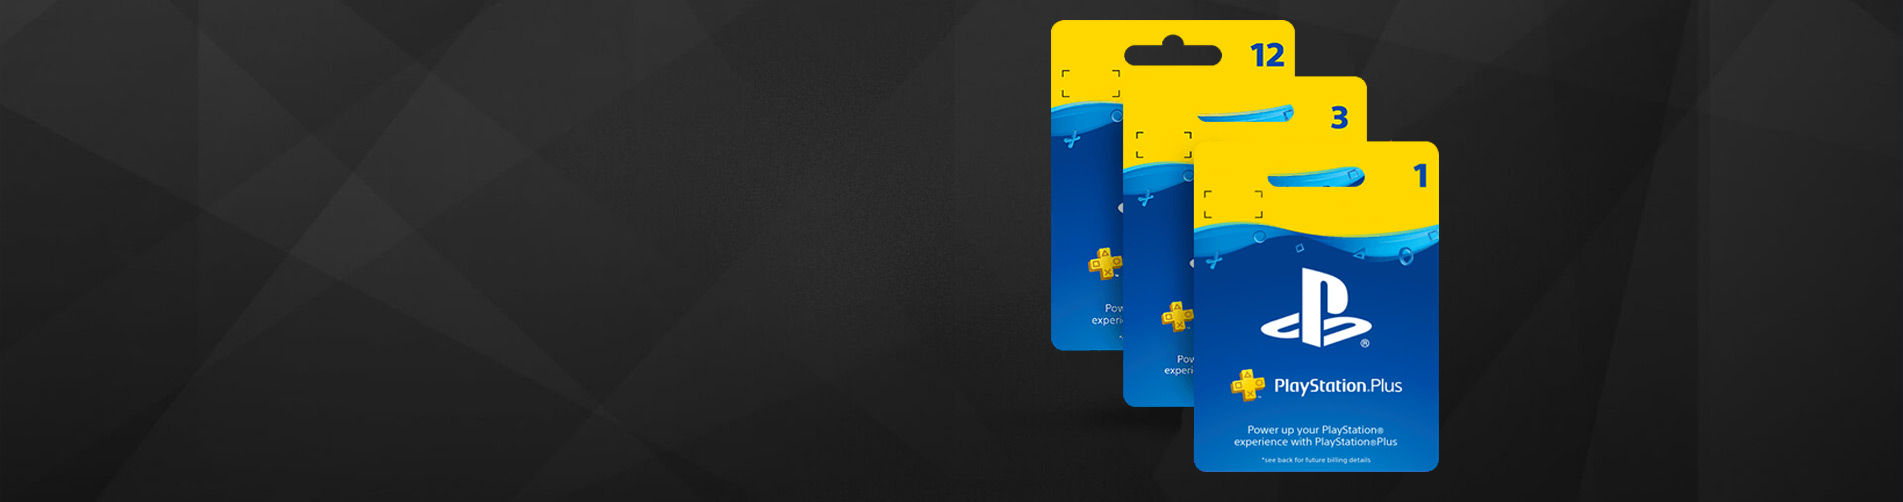 abonnements playstation plus